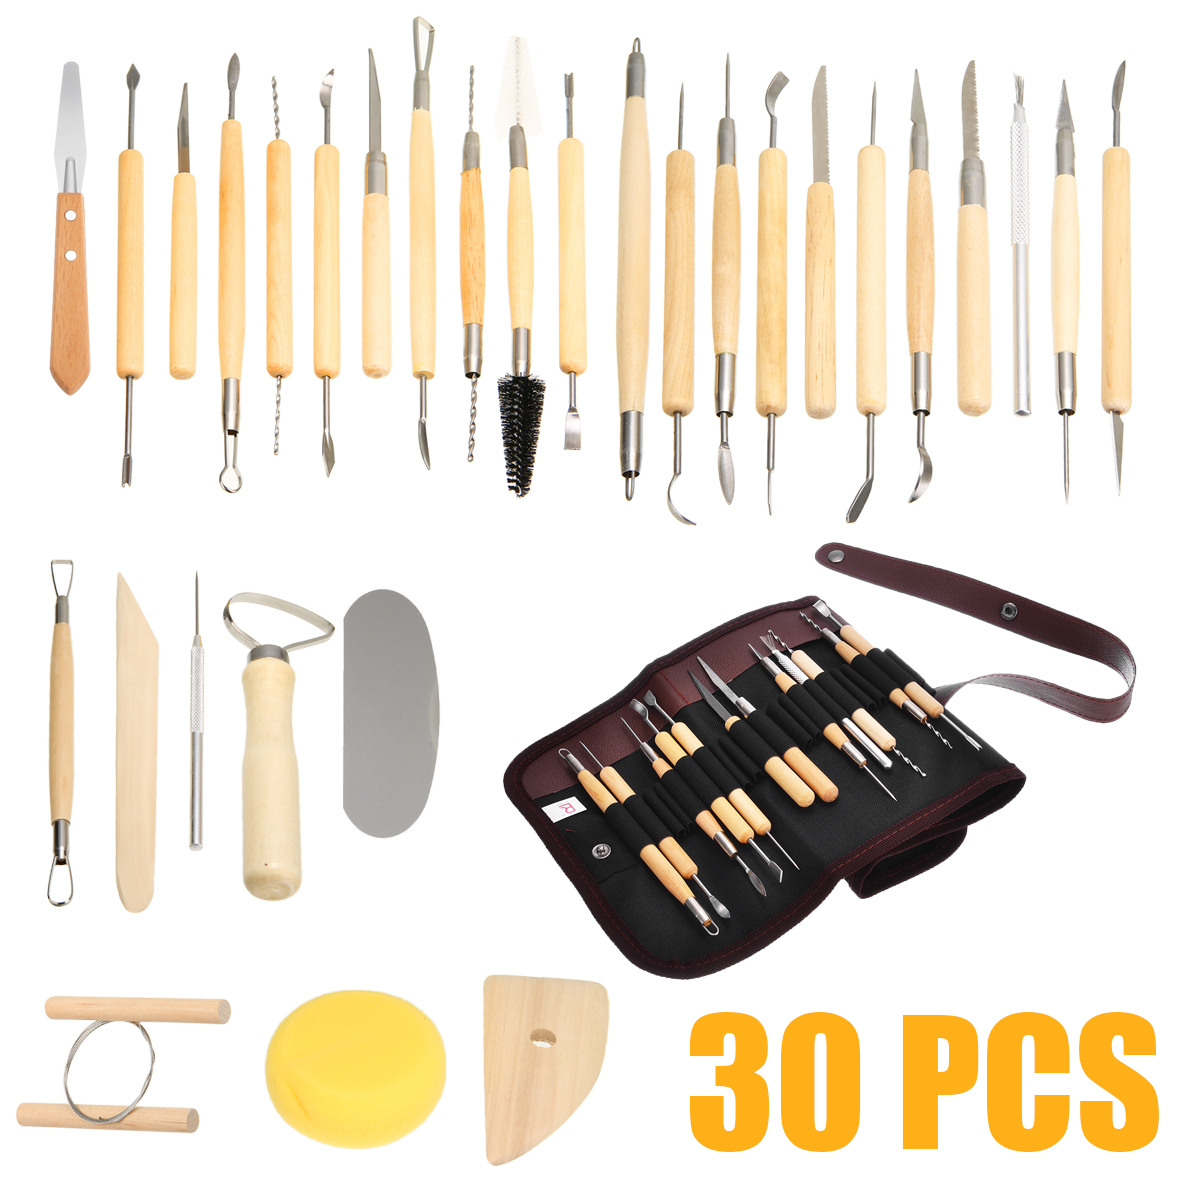 30PCS DIY Pottery Clay Sculpture Carving Modelling Ceramic Craft Tools Kit Clay